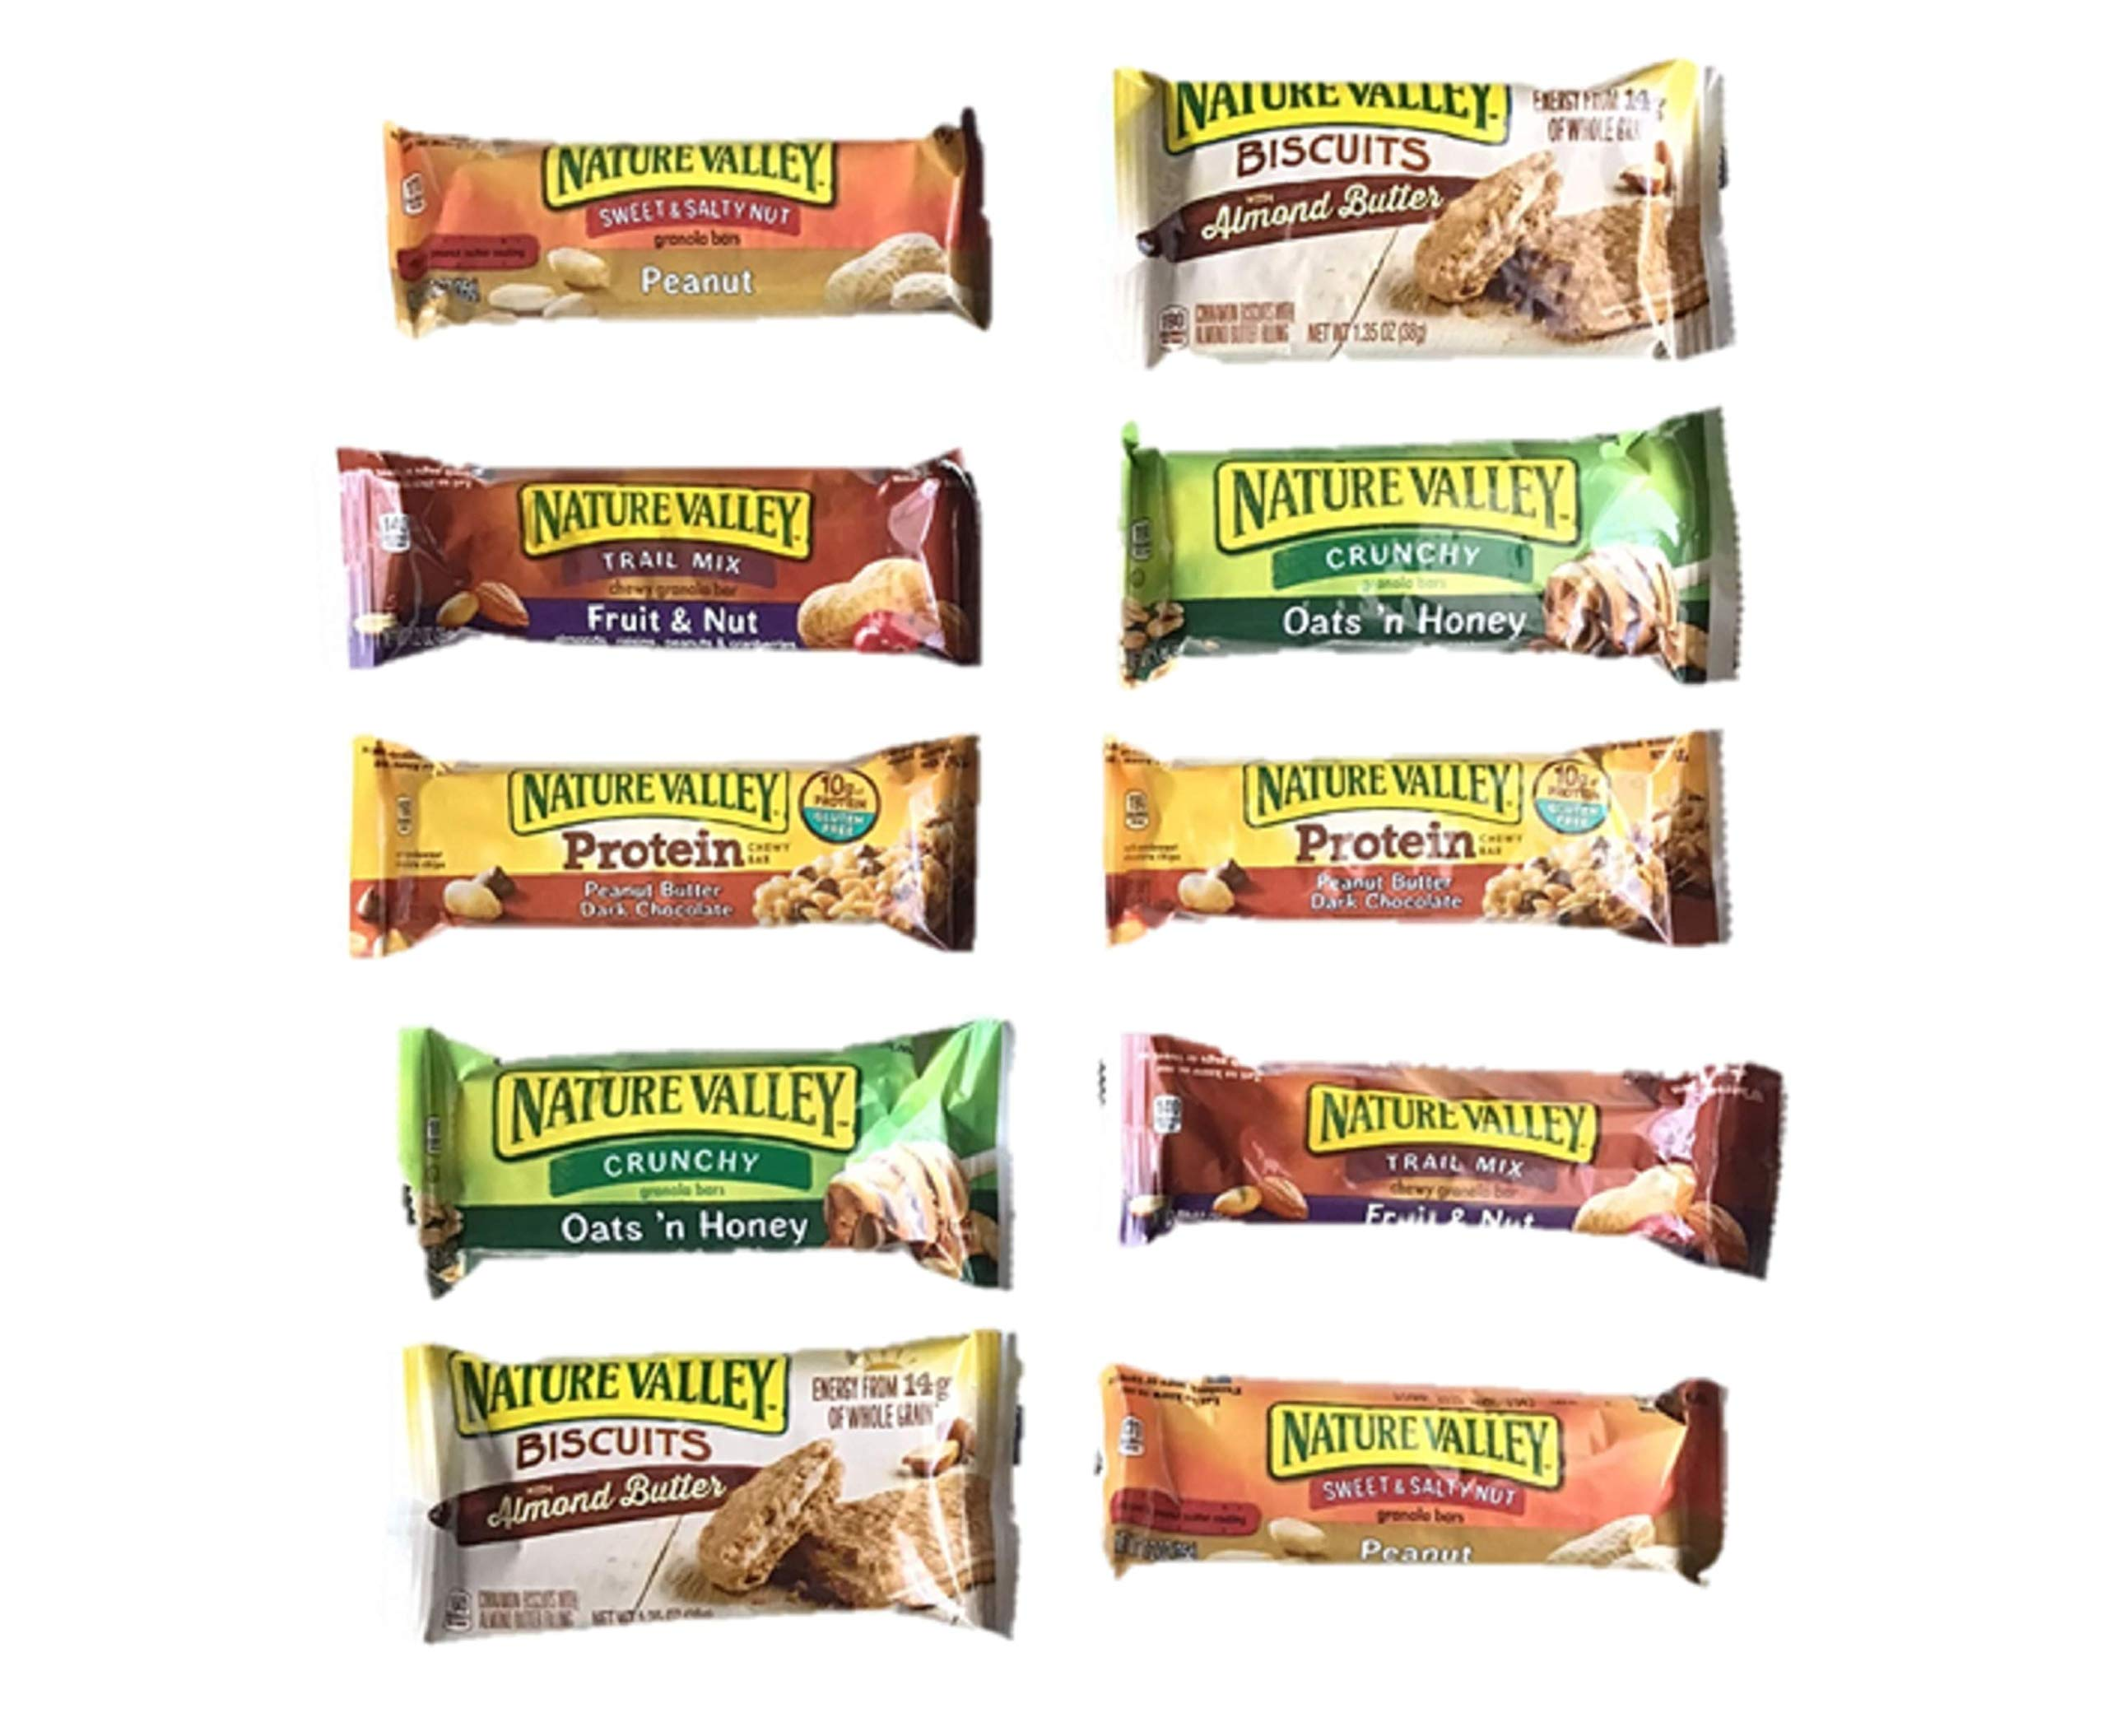 Nature Valley granola bars variety pack, 10 snack bars, 5 flavors, protien fruit and nut, oats and honey, biscuits, peanut, almond by IW